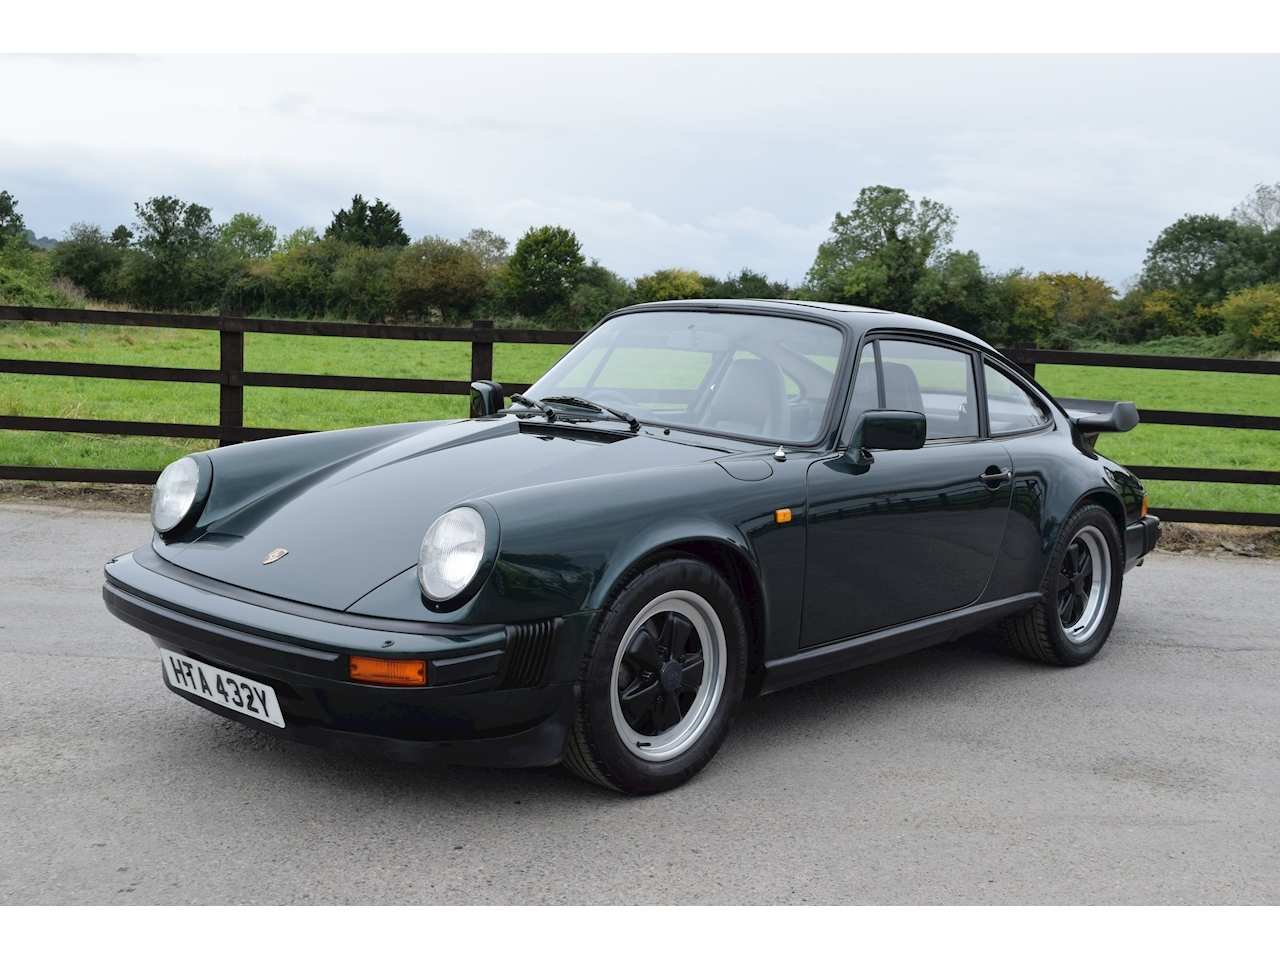 Porsche 911 911 3.0 2dr Coupe Manual Petrol